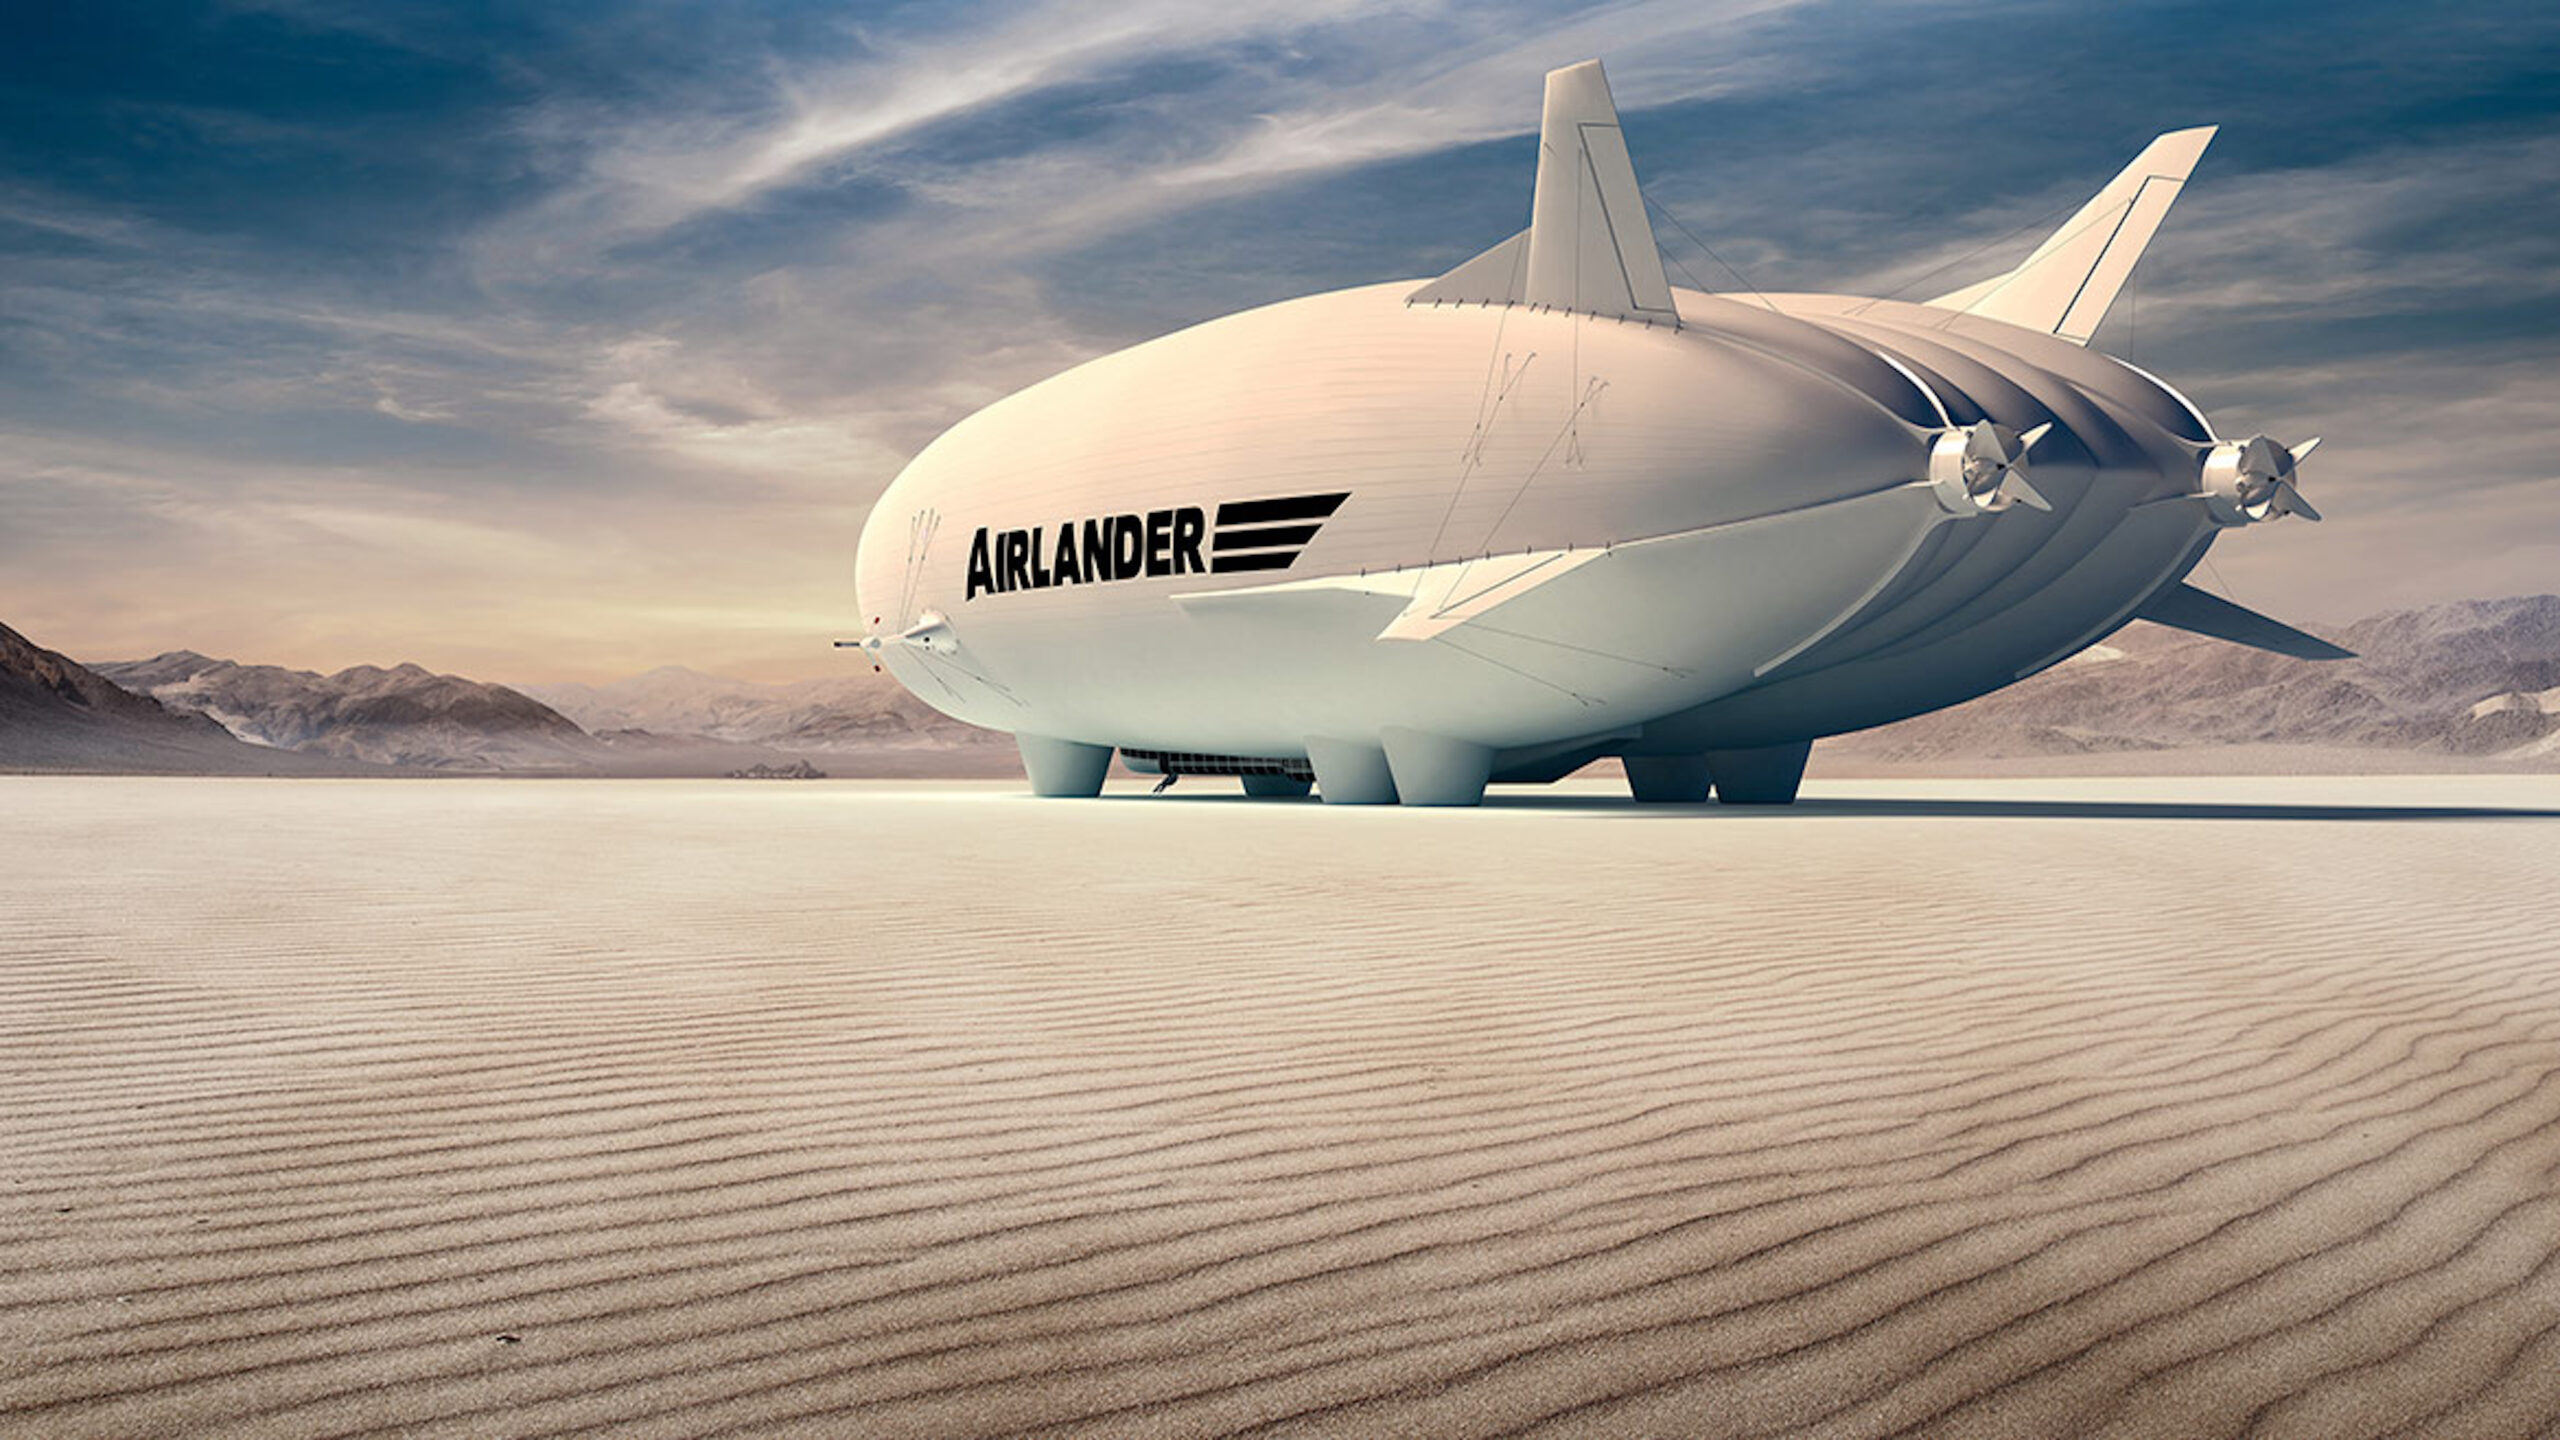 Airlander in the desert